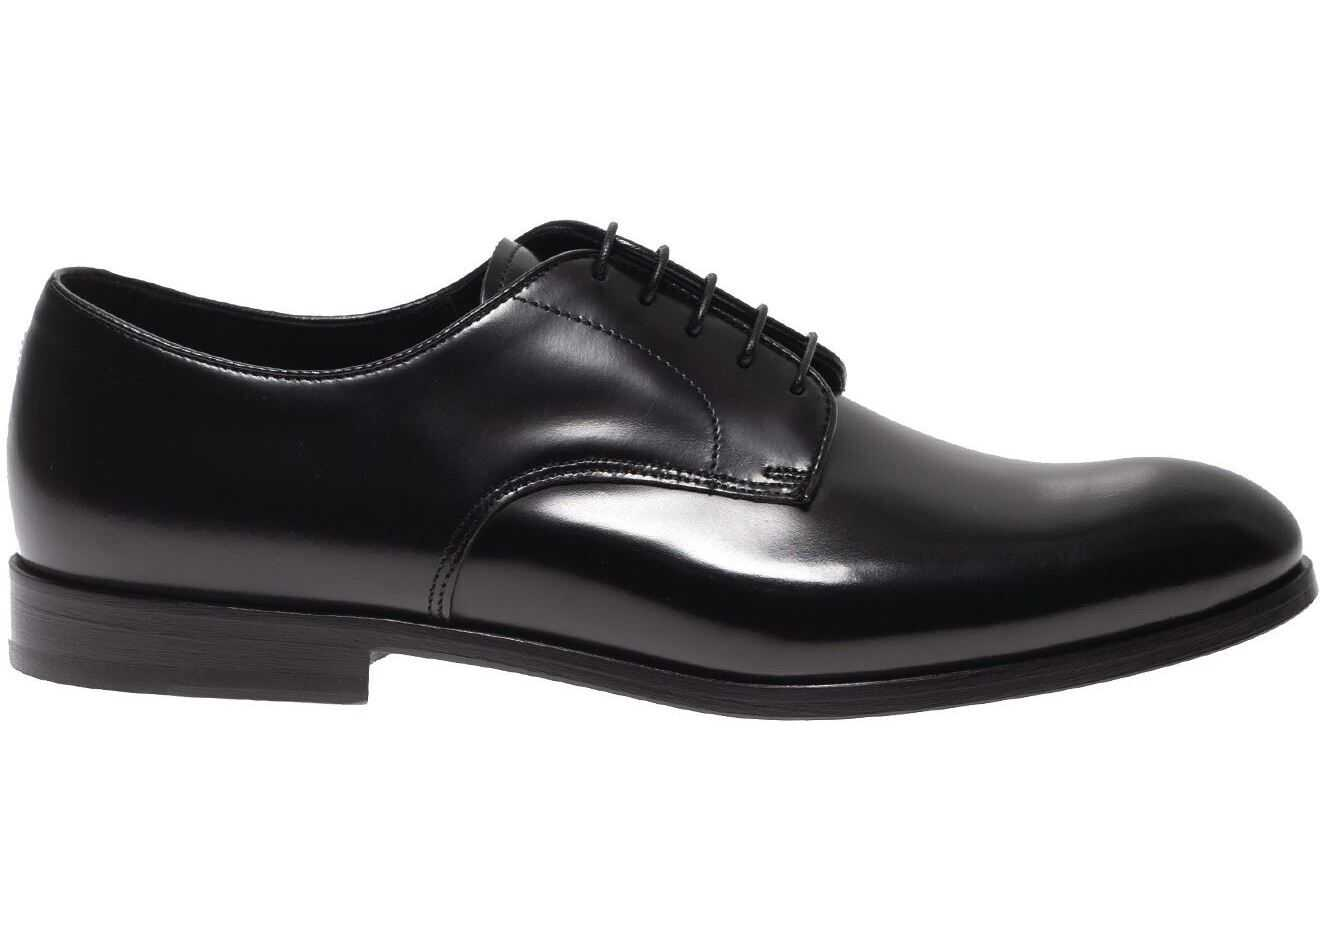 Doucal's Derby Shoes In Black Brushed Leather DU1003RENNUF028NN00 Black imagine b-mall.ro